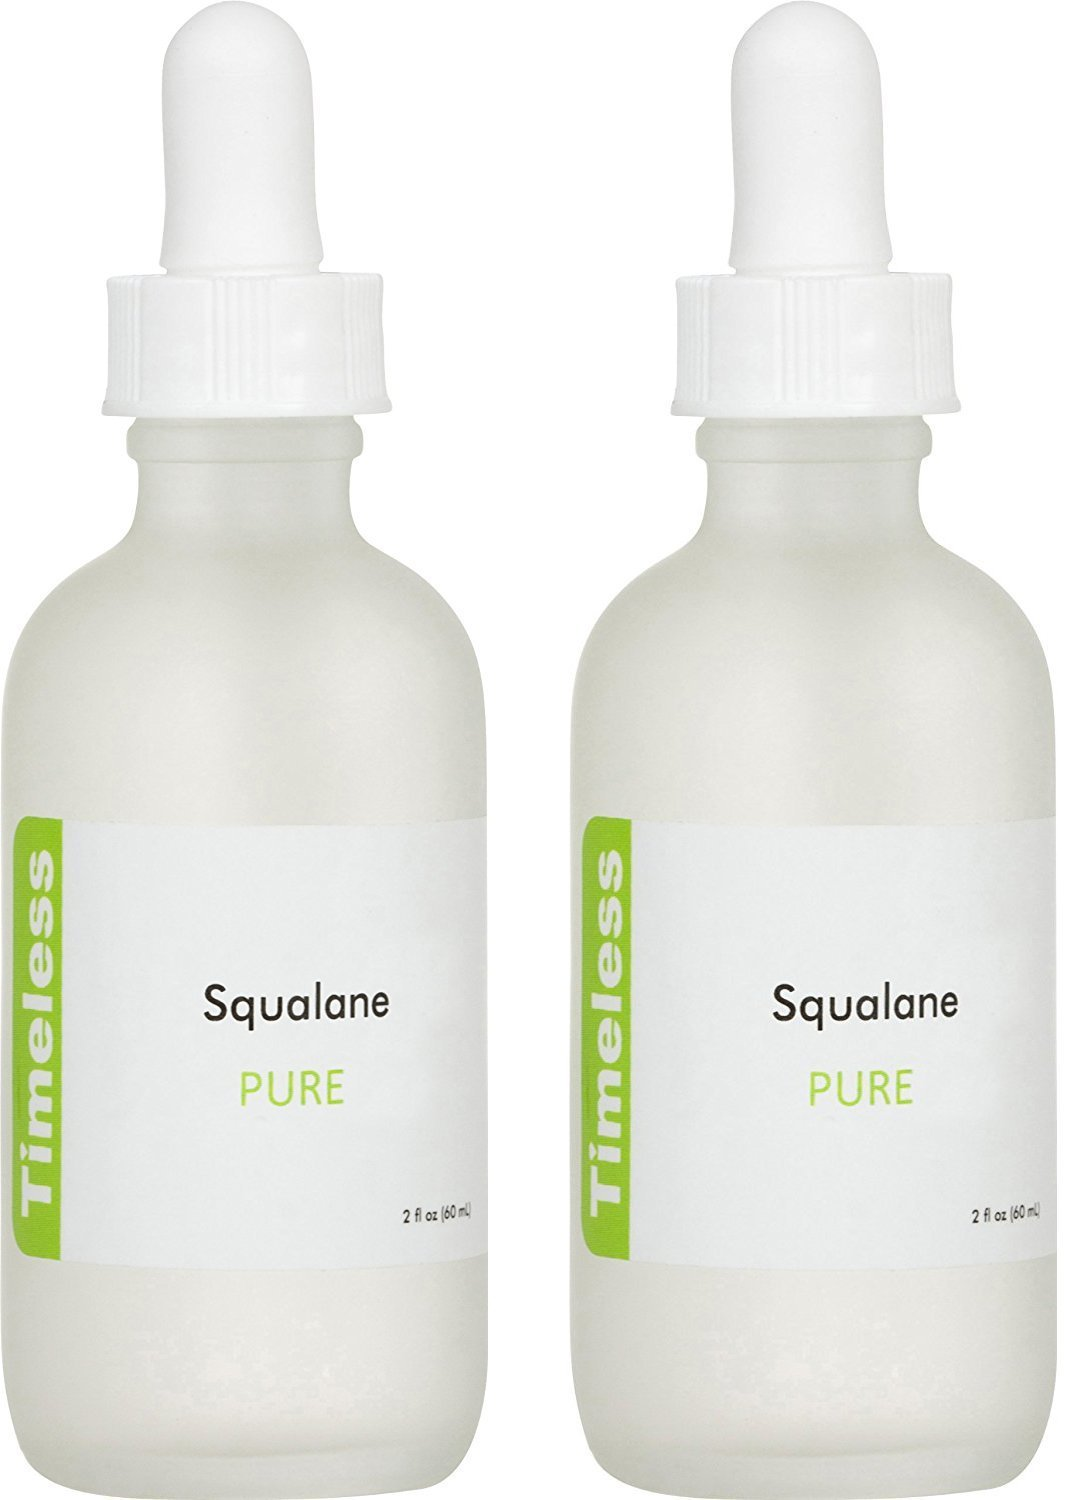 Squalane 100% Pure (2 oz (60 mL)) Timeless Skin Care